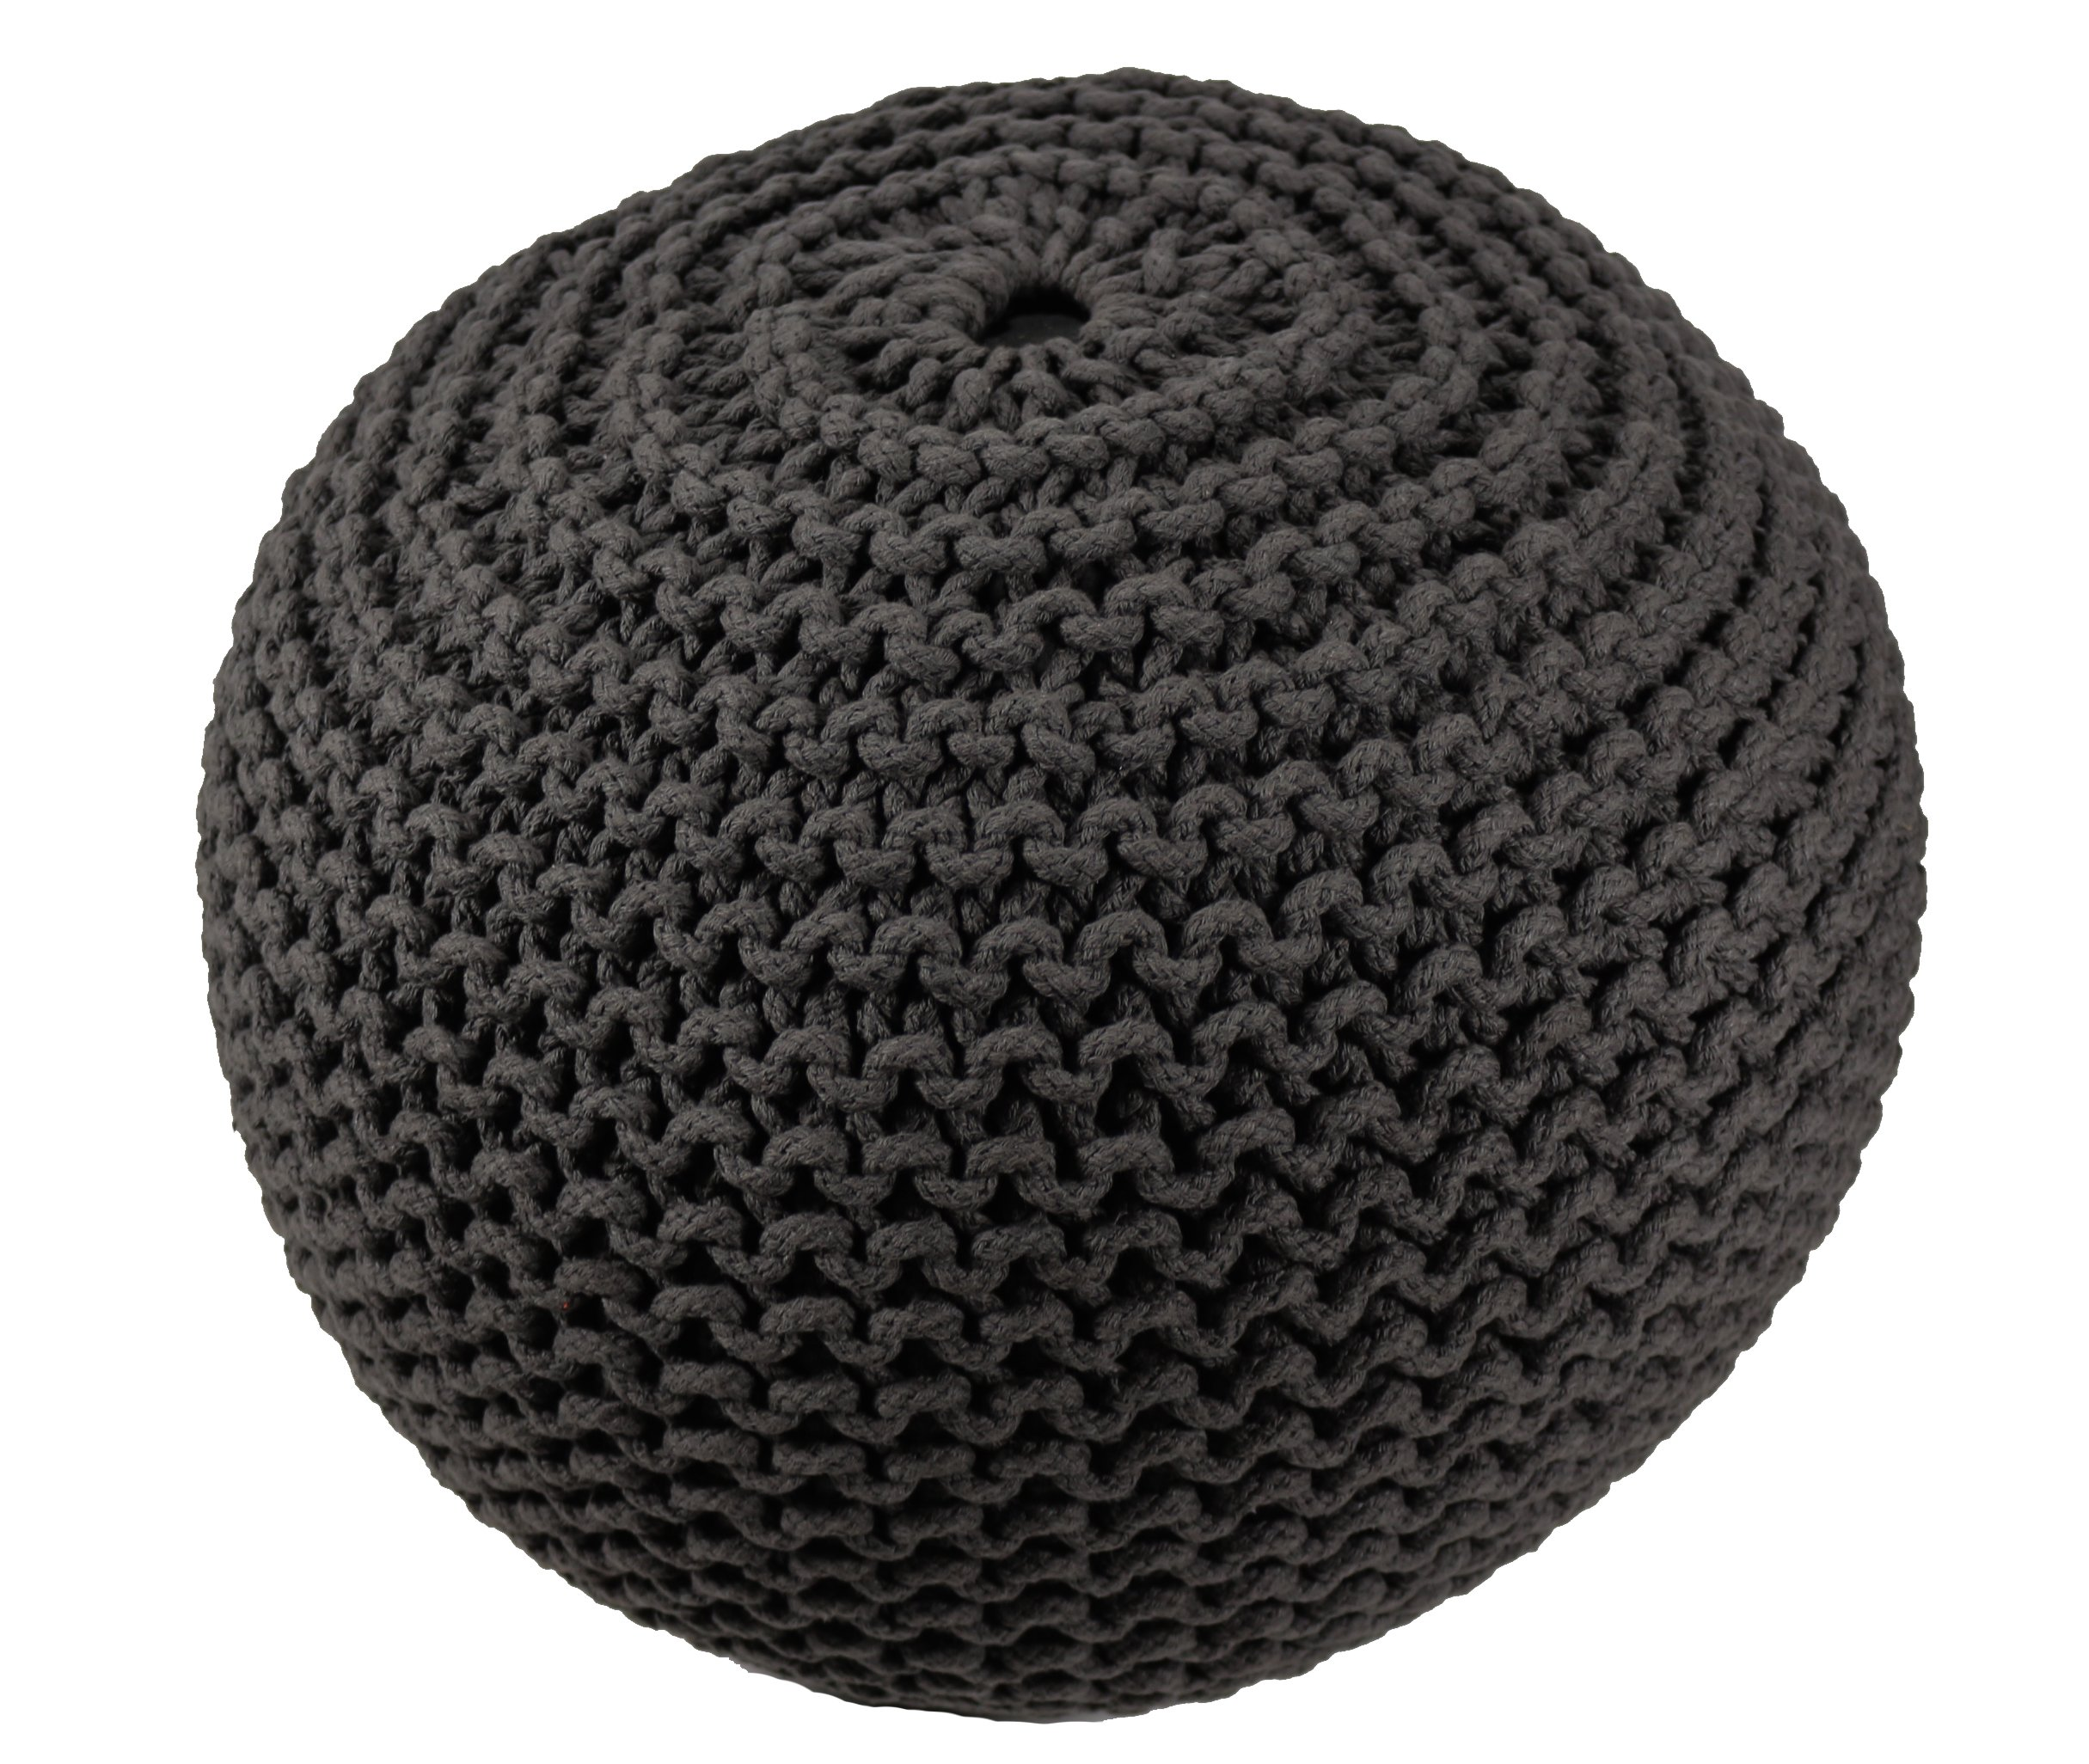 BrandWave Cotton Cover Round Pouf Ottomon/Seat - Elegantly Woven Hand Knit 100 Percent Cotton Cover - Soft Yet Sturdy Design - Black - 18x18x18 (round) by BrandWave by Lifetime Buy